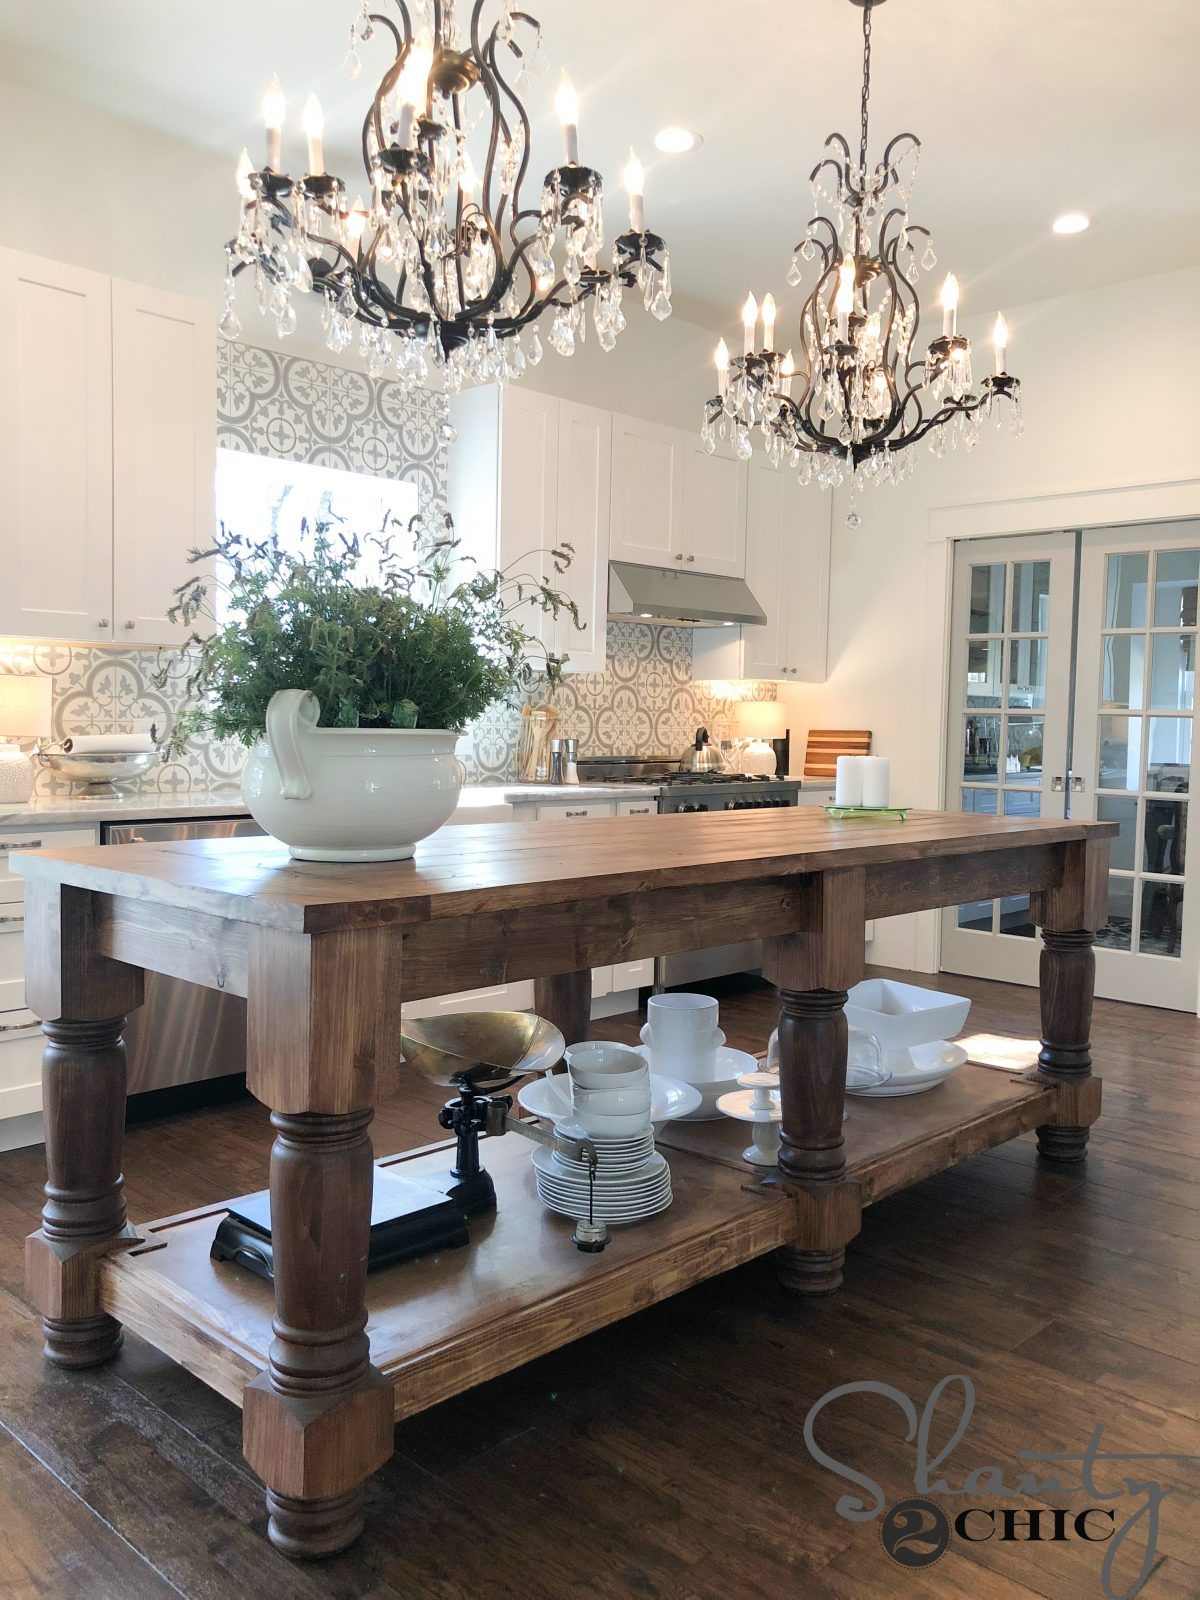 Free plans and how-to video to build this beautiful 8.5' farmhouse style kitchen island! STAIN: Gelstain from Minwax in Chestnut